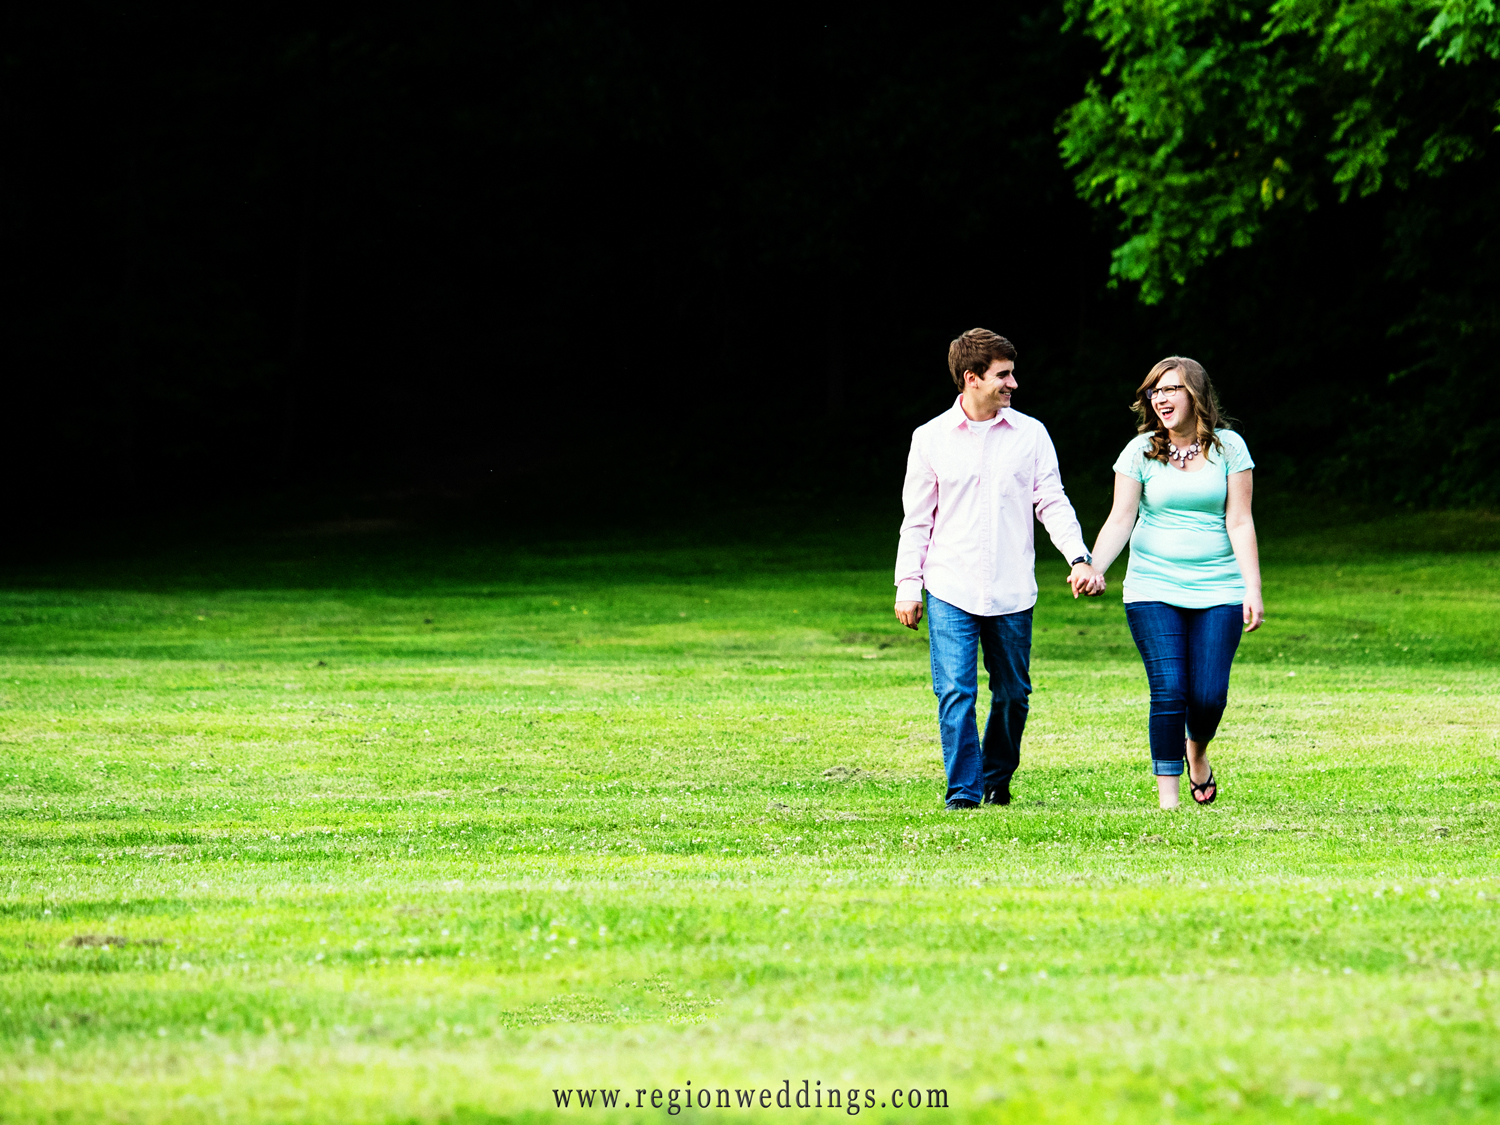 A fun stroll through the grass during an engagement session.